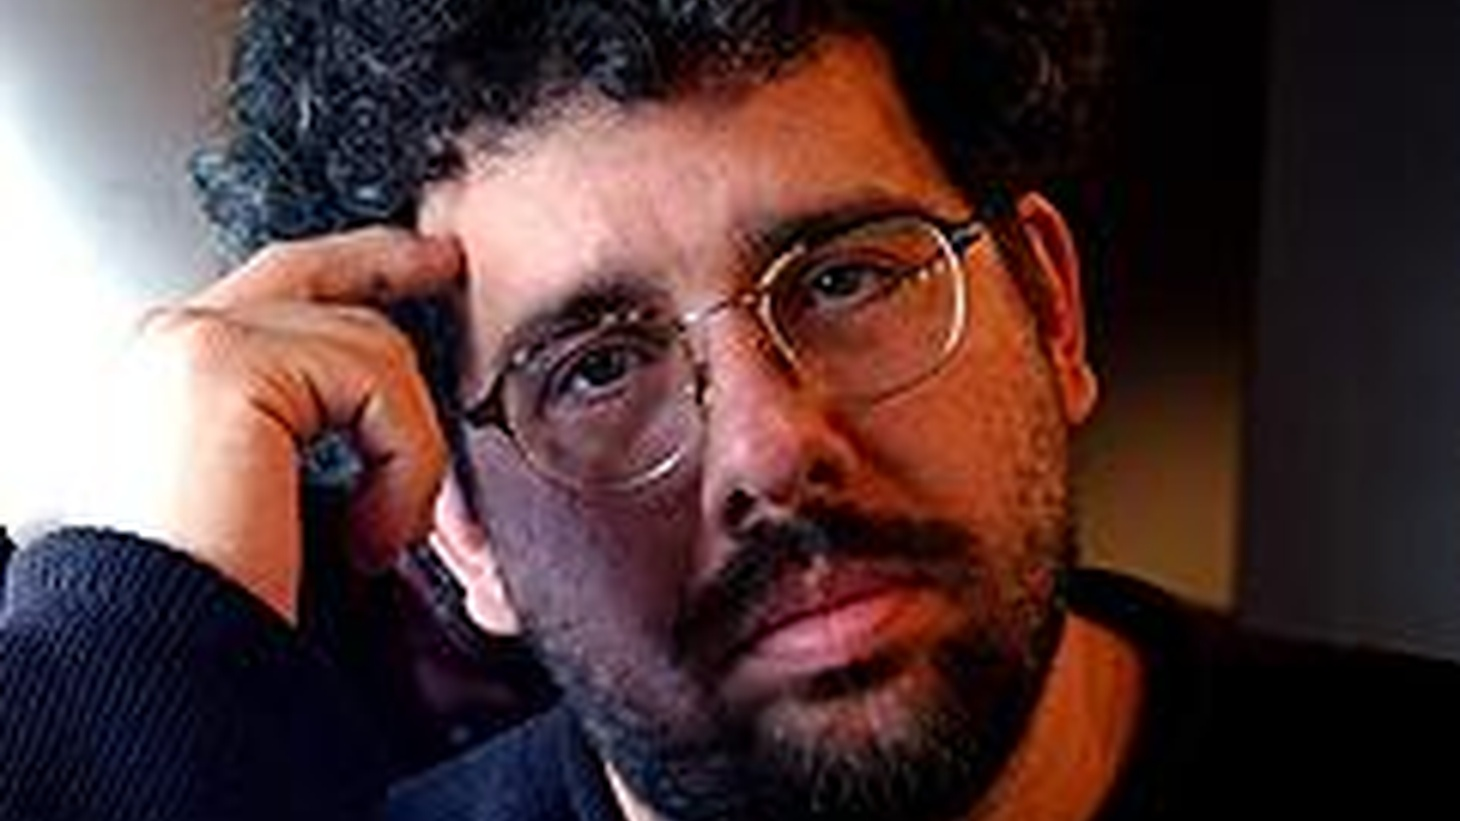 You might think it difficult to make fear, weakness bulling a career. Writer-director Neil LaBute (In the Company of Men, Nurse Betty)  disagrees with you. He's proved it works in film, on stage and with the West Coast premiere of his new play, Some Girls.